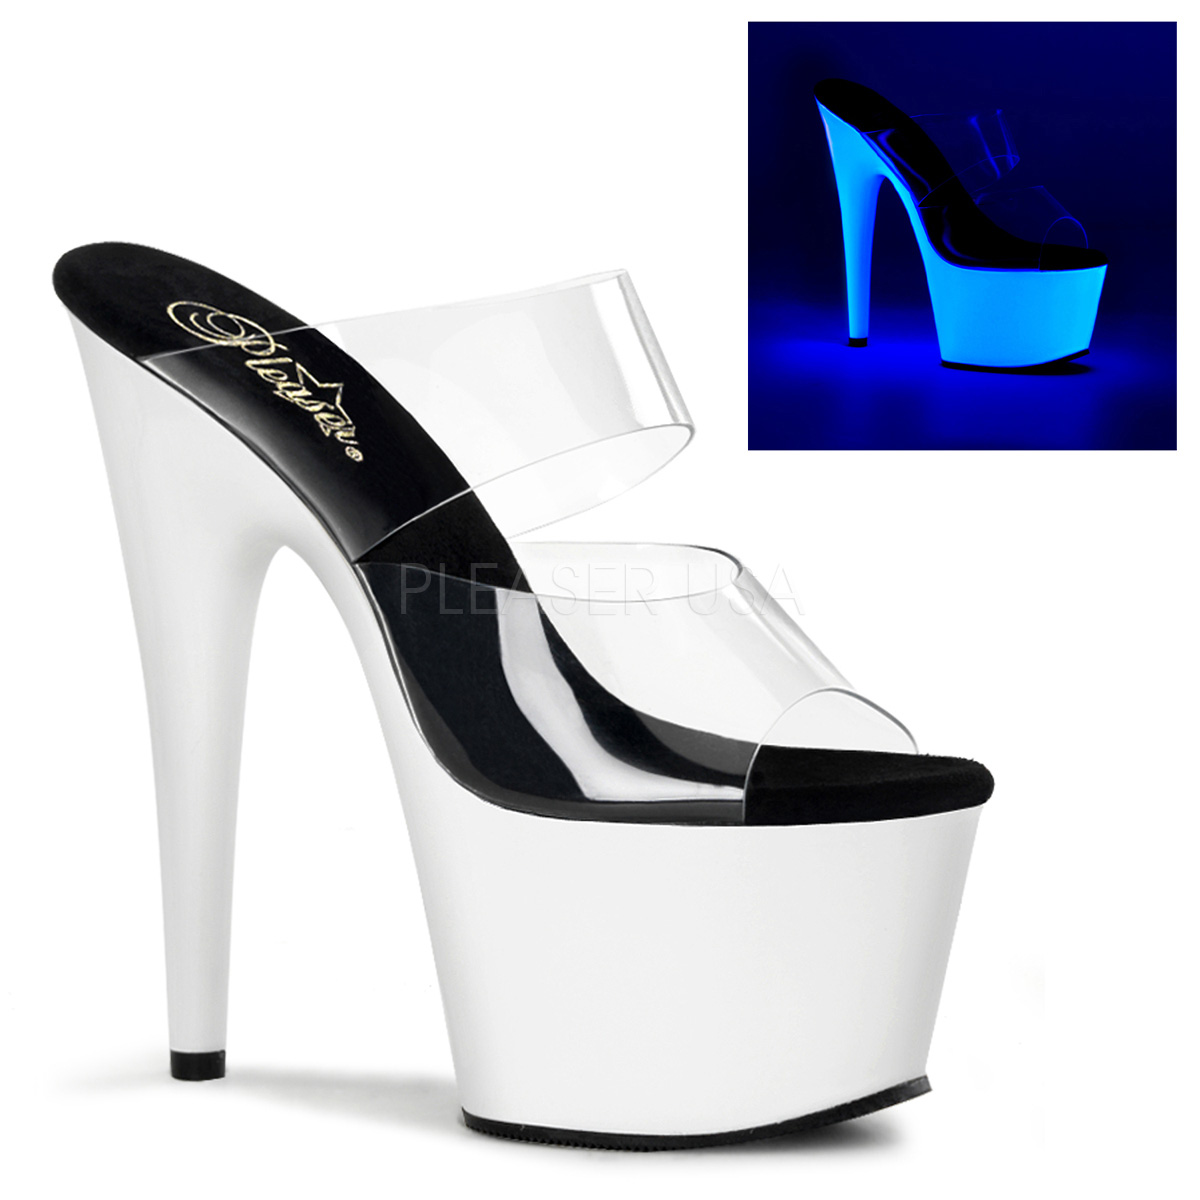 7 Inch Stiletto Heel Neon Platform Two Band Slide